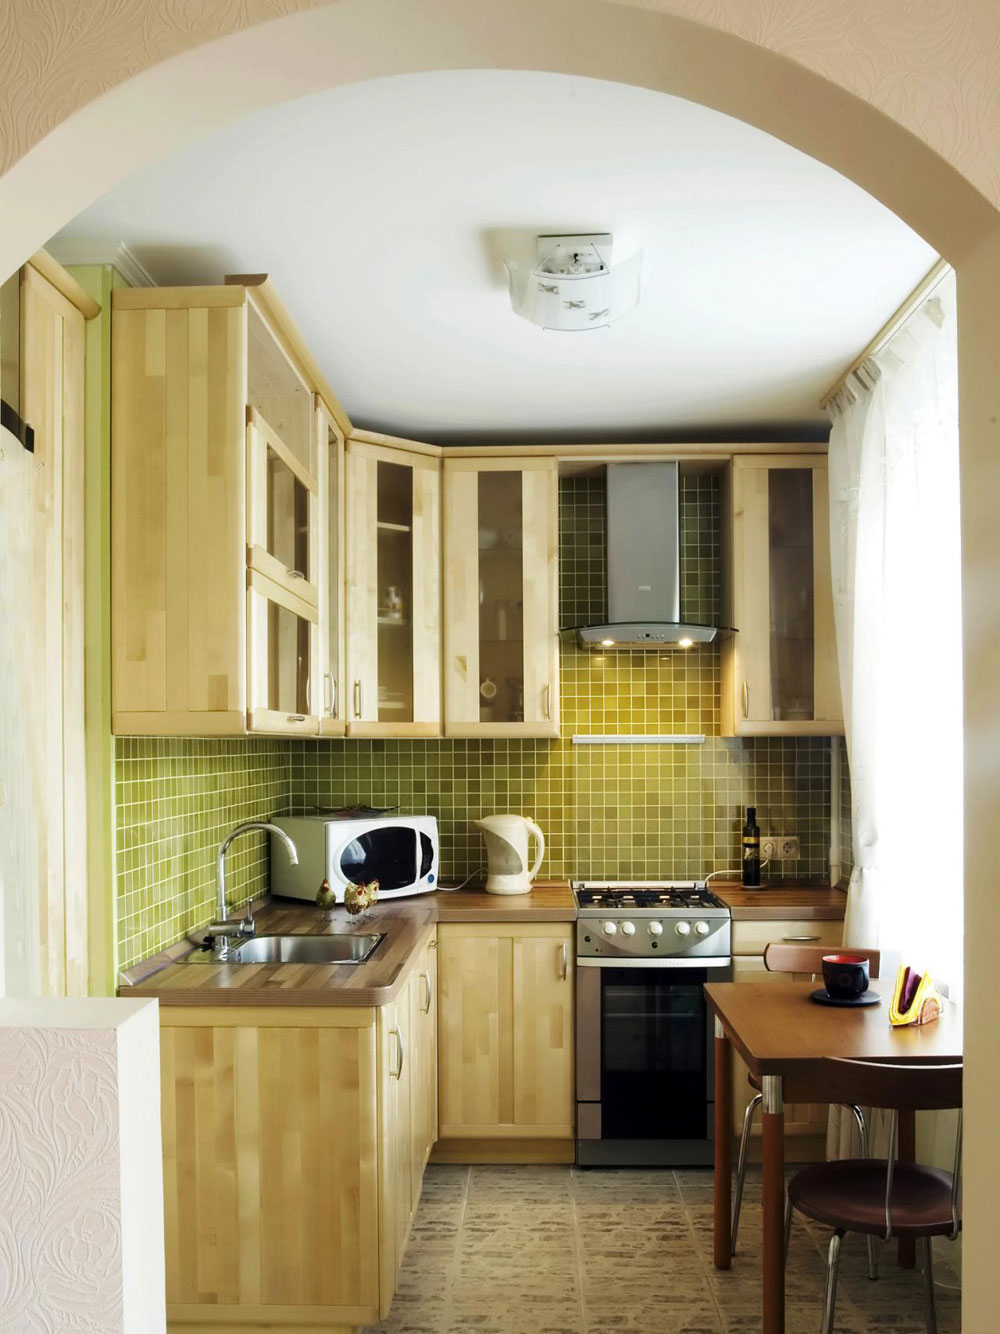 Tips and Ideas for Redesigning a Small Kitchen 7 Tips and Ideas for Redesigning a Small Kitchen